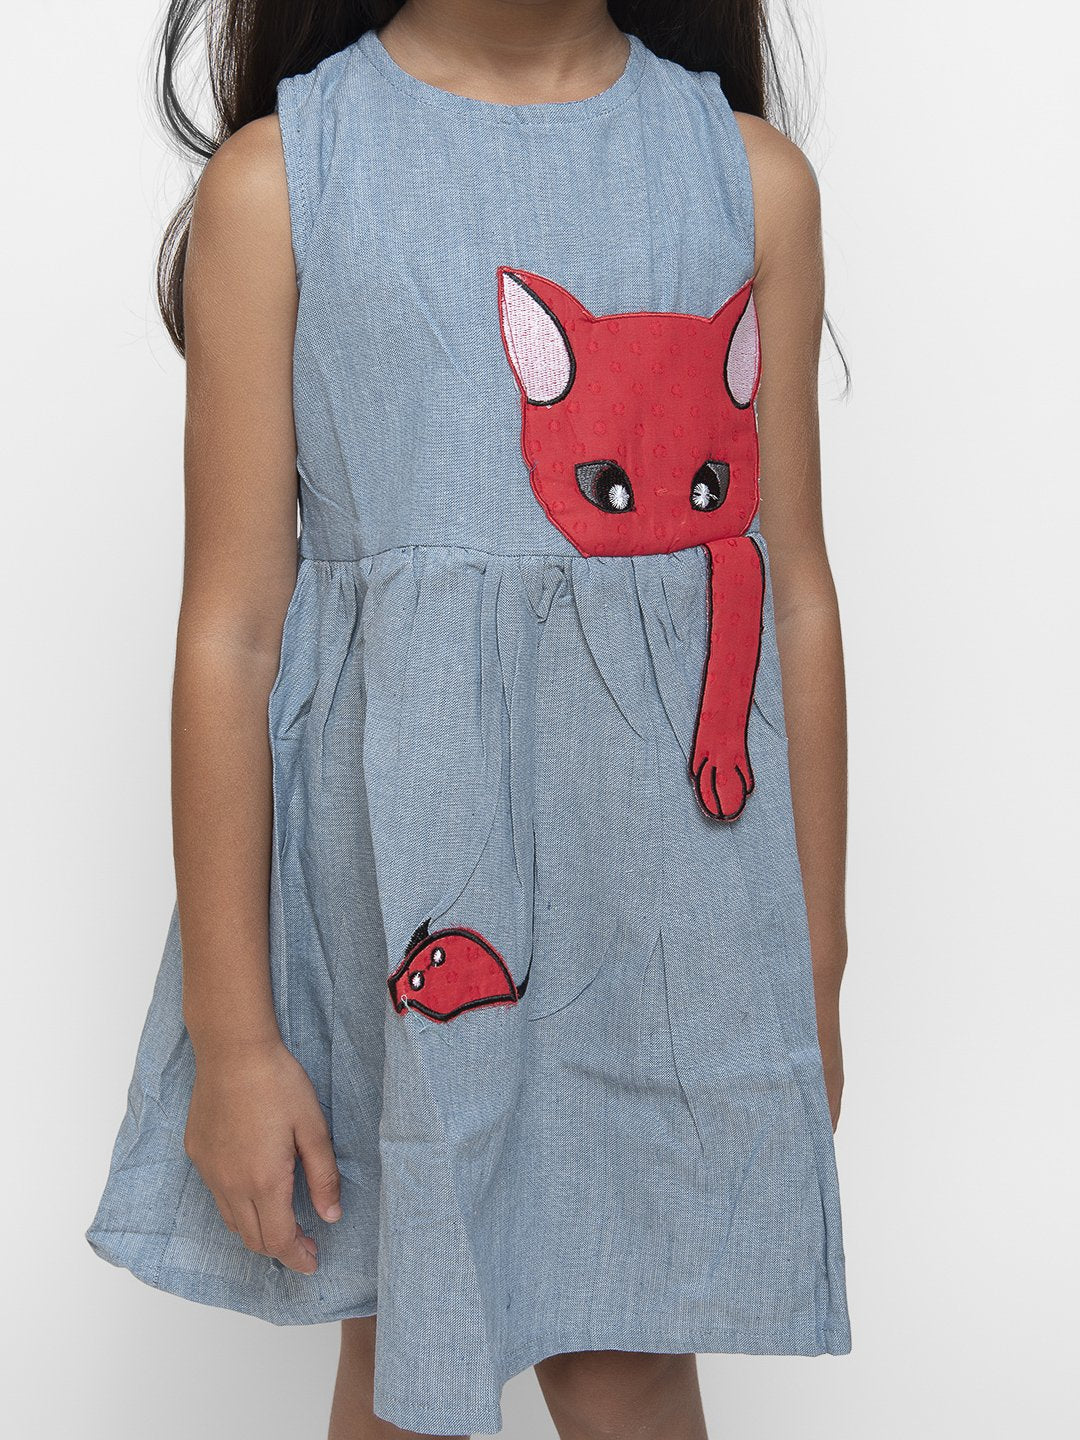 Fairies Forever Kittyon my Denim Dress